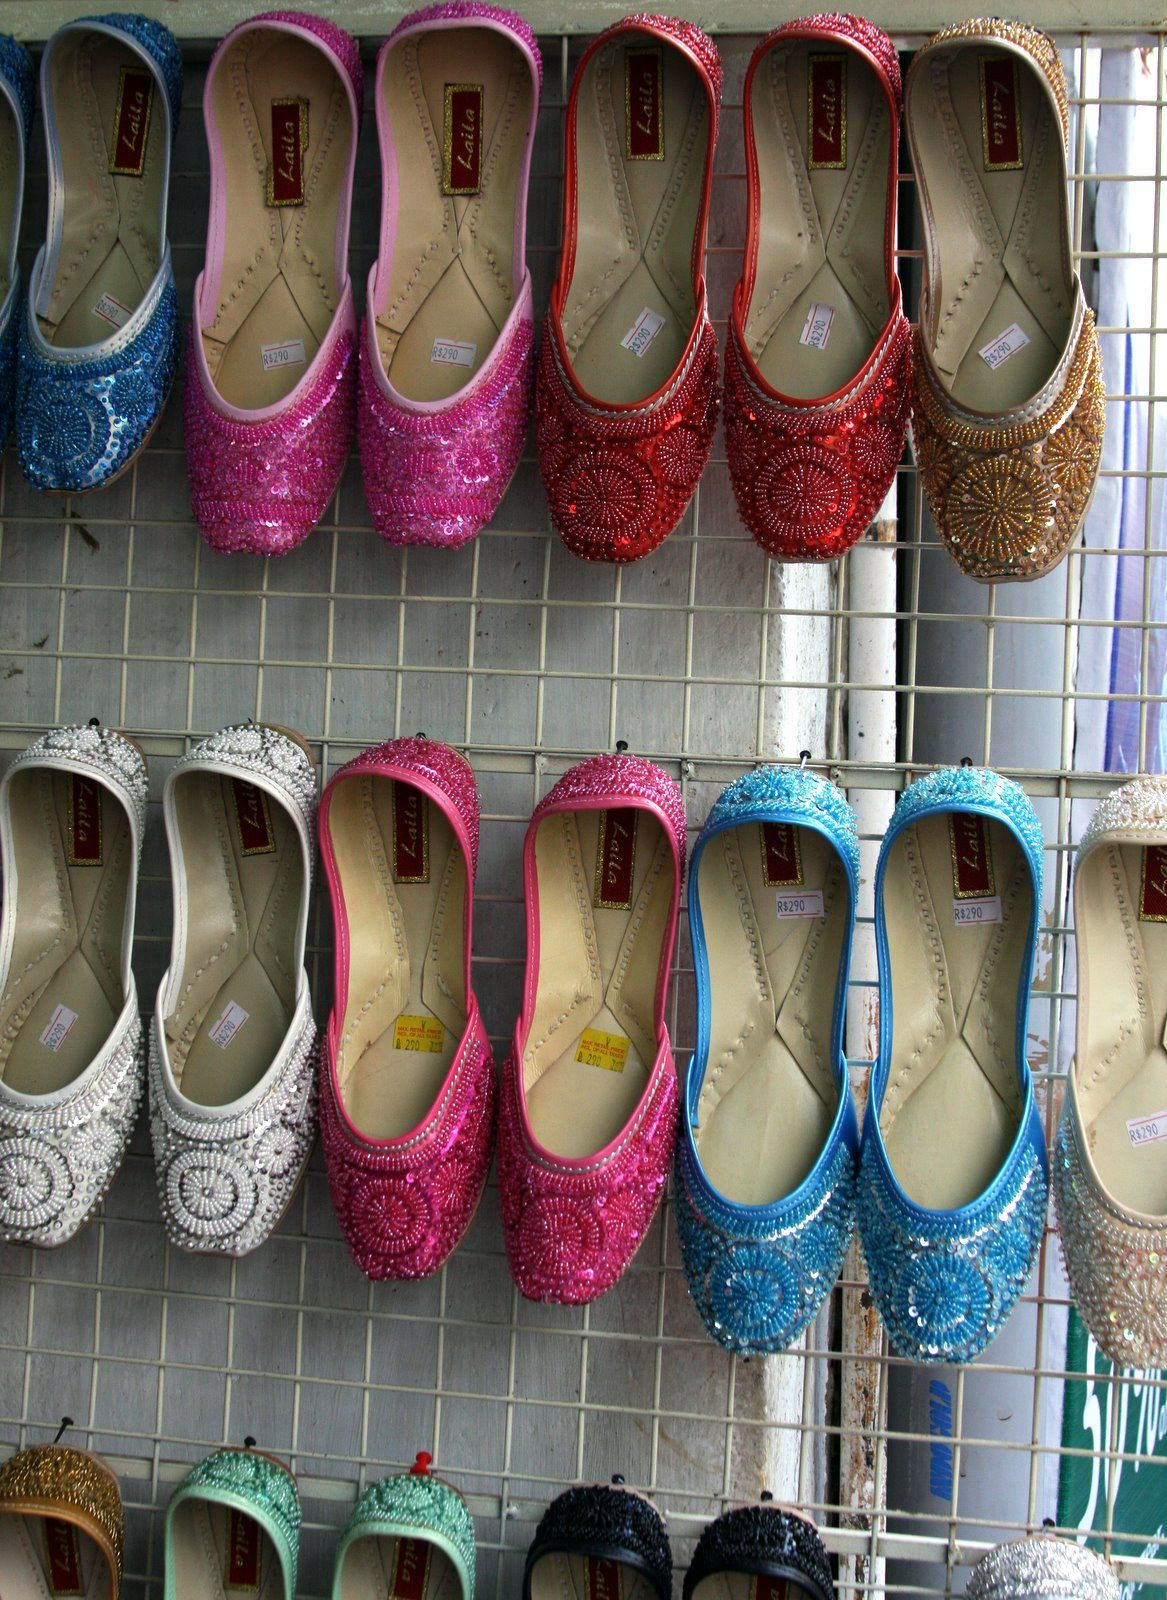 they sold shoes like those in nepal too!